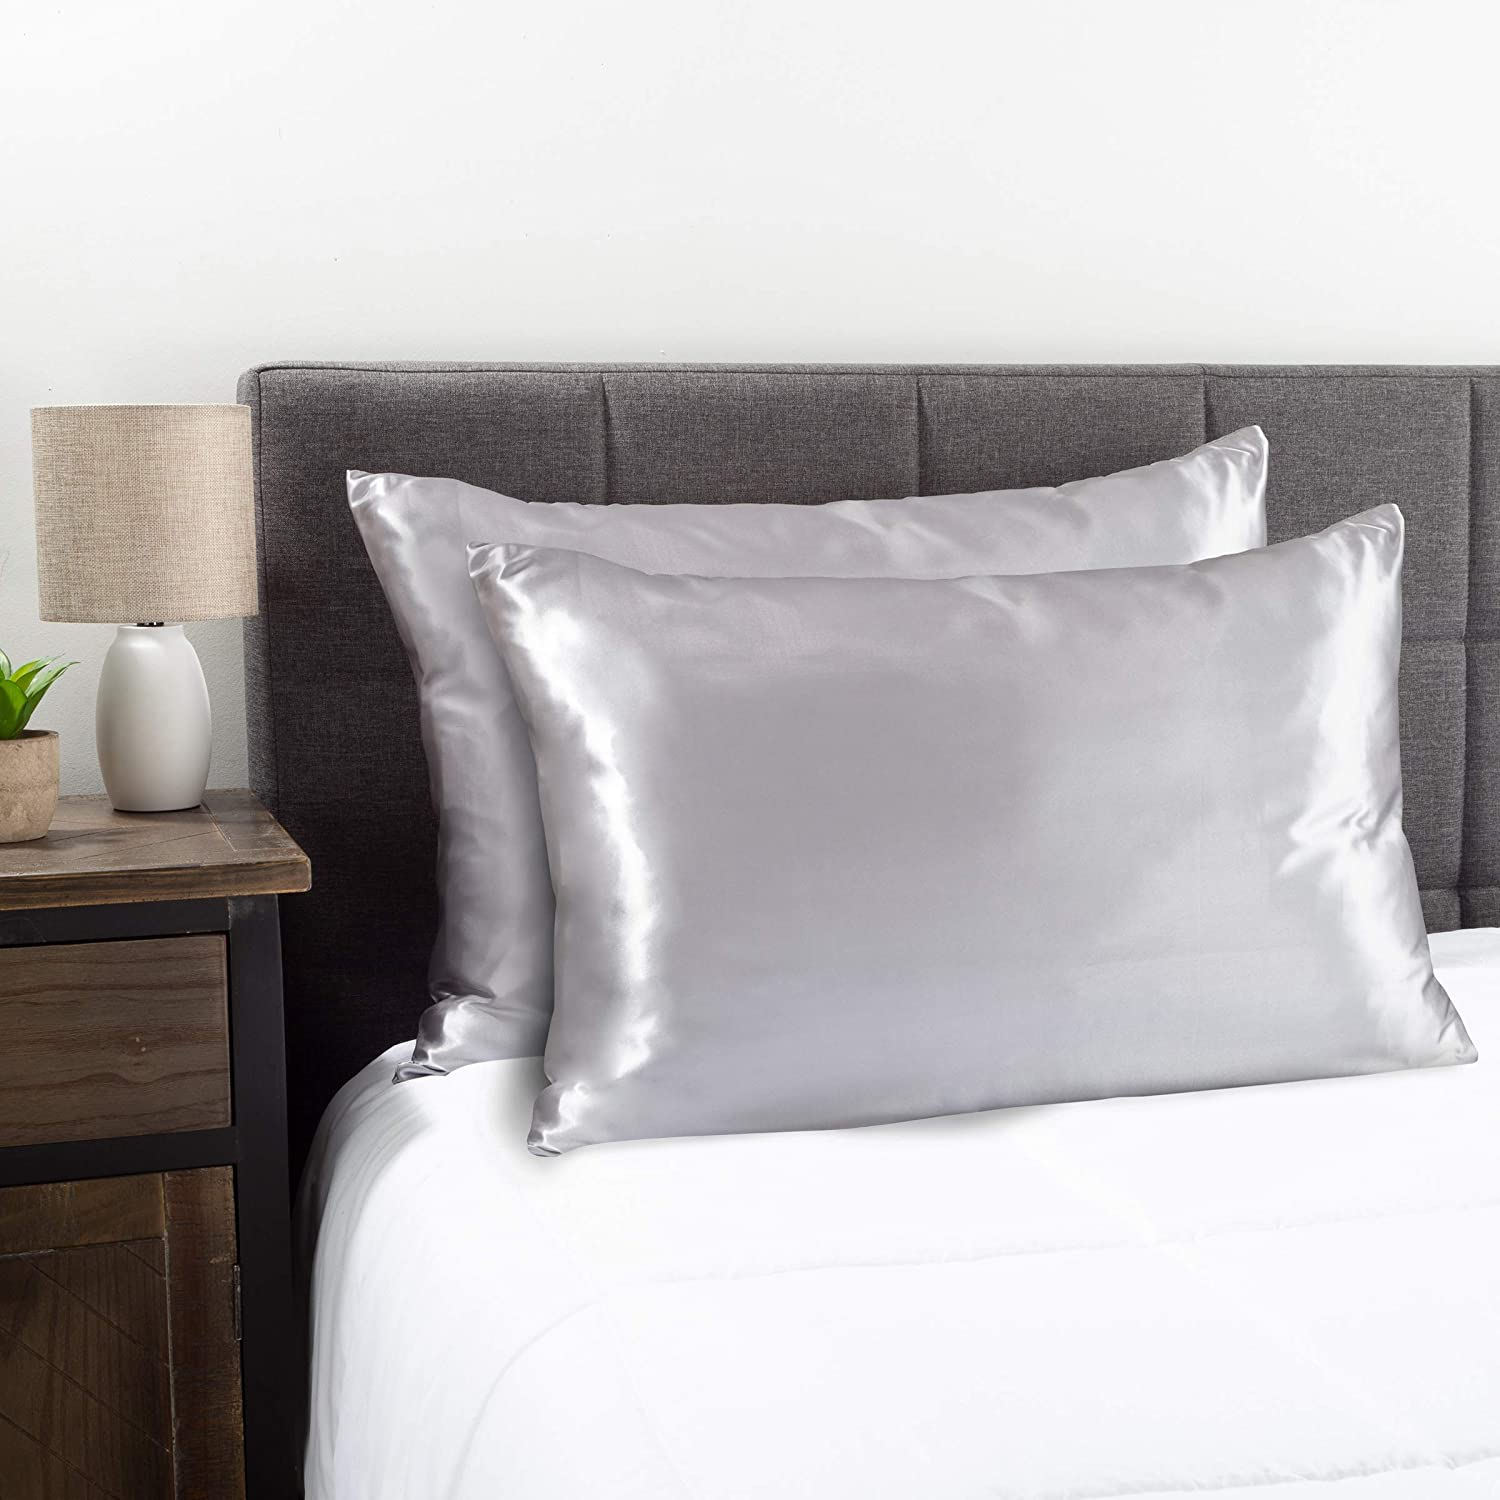 Lavish Home Collection Satin Microfiber Pillowcases for Hair & Skin- Set of 2 King Size Pillow Covers, Hidden Zipper- Helps Prevent Frizz & Wrinkles by LHC (Silver Gray)